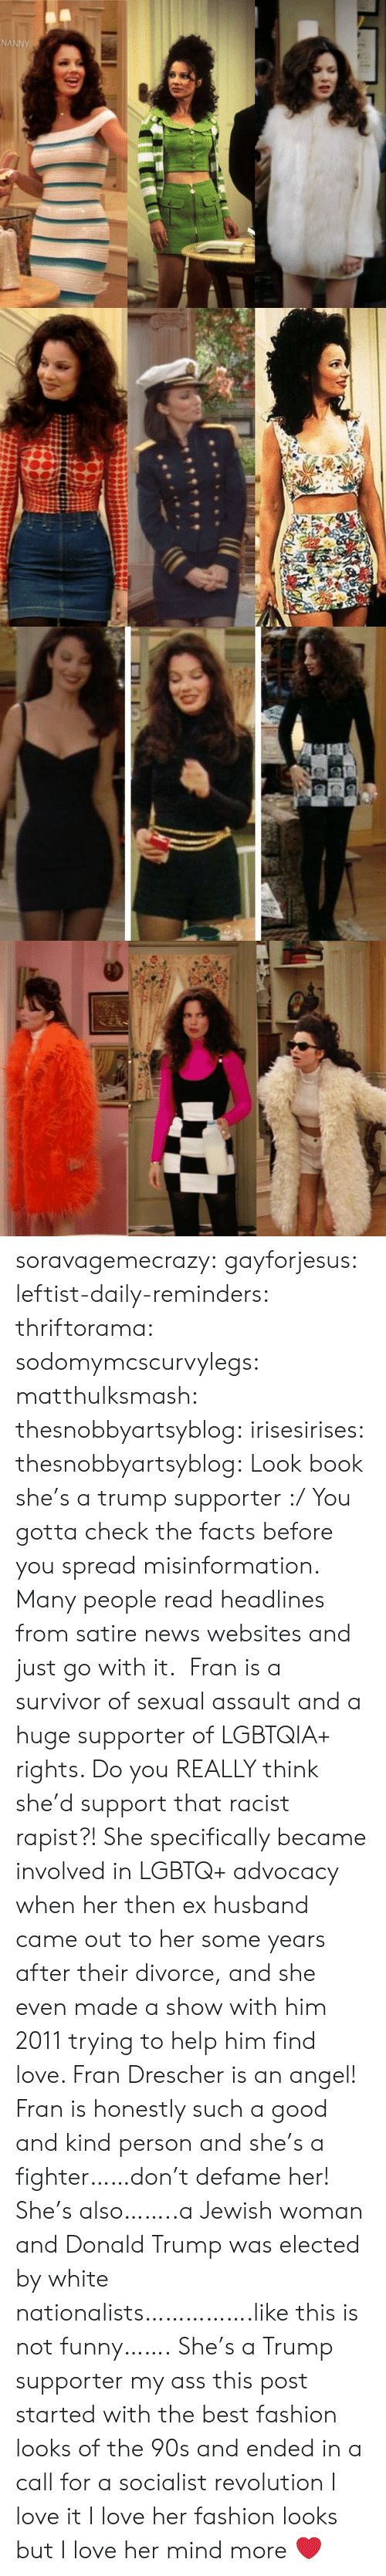 Donald Trump, Facts, and Fashion: soravagemecrazy: gayforjesus:  leftist-daily-reminders:  thriftorama:  sodomymcscurvylegs:  matthulksmash:   thesnobbyartsyblog:  irisesirises:  thesnobbyartsyblog: Look book she's a trump supporter :/  You gotta check the facts before you spread misinformation. Many people read headlines from satire news websites and just go with it.  Fran is a survivor of sexual assault and a huge supporter of LGBTQIA+ rights. Do you REALLY think she'd support that racist rapist?!   She specifically became involved in LGBTQ+ advocacy when her then ex husband came out to her some years after their divorce, and she even made a show with him 2011 trying to help him find love. Fran Drescher is an angel!  Fran is honestly such a good and kind person and she's a fighter……don't defame her! She's also……..a Jewish woman and Donald Trump was elected by white nationalists…………….like this is not funny…….  She's a Trump supporter my ass  this post started with the best fashion looks of the 90s and ended in a call for a socialist revolution I love it   I love her fashion looks but I love her mind more ❤️